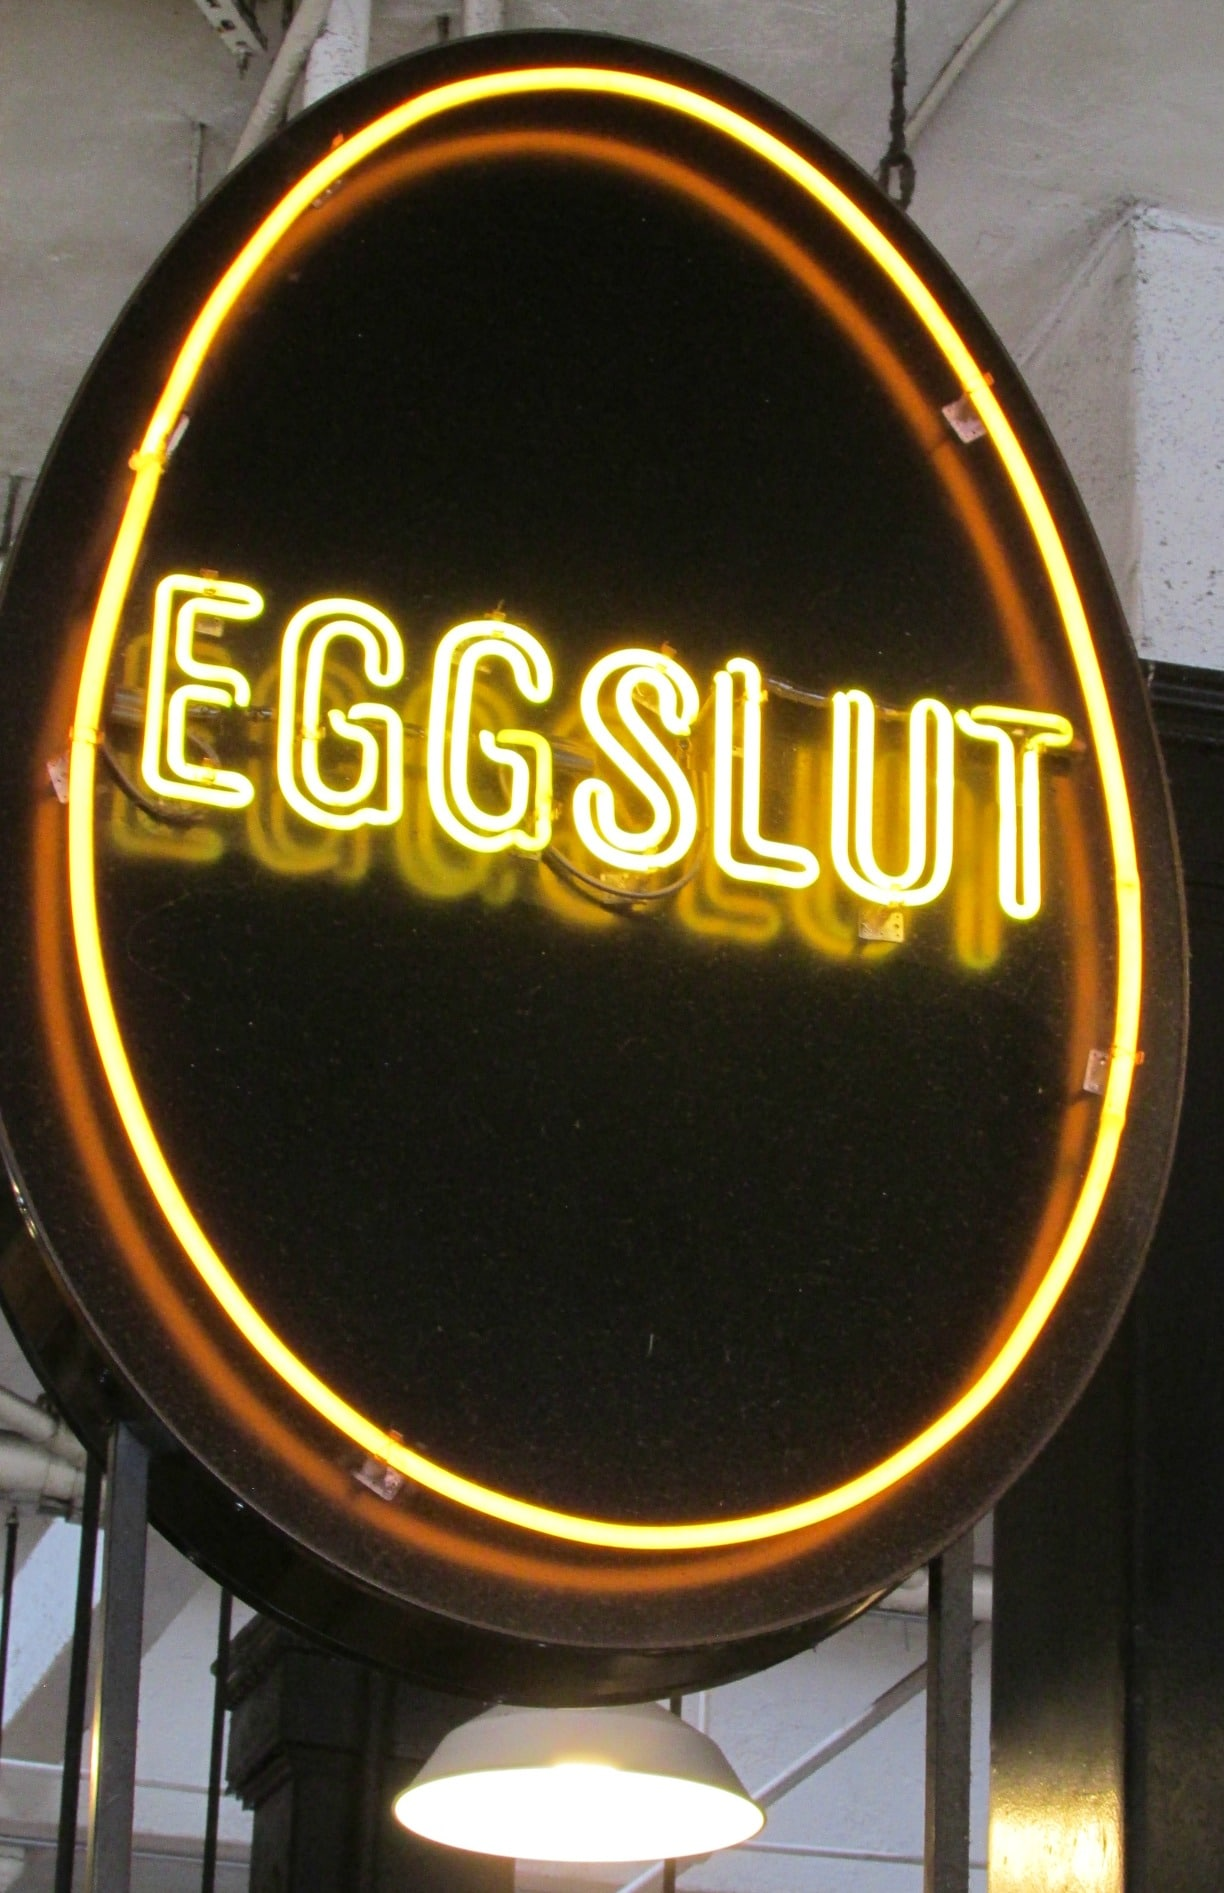 EggSlut in the Grand Central Market DTLA is a hugely popular place to have breakfast. There's always a long line.